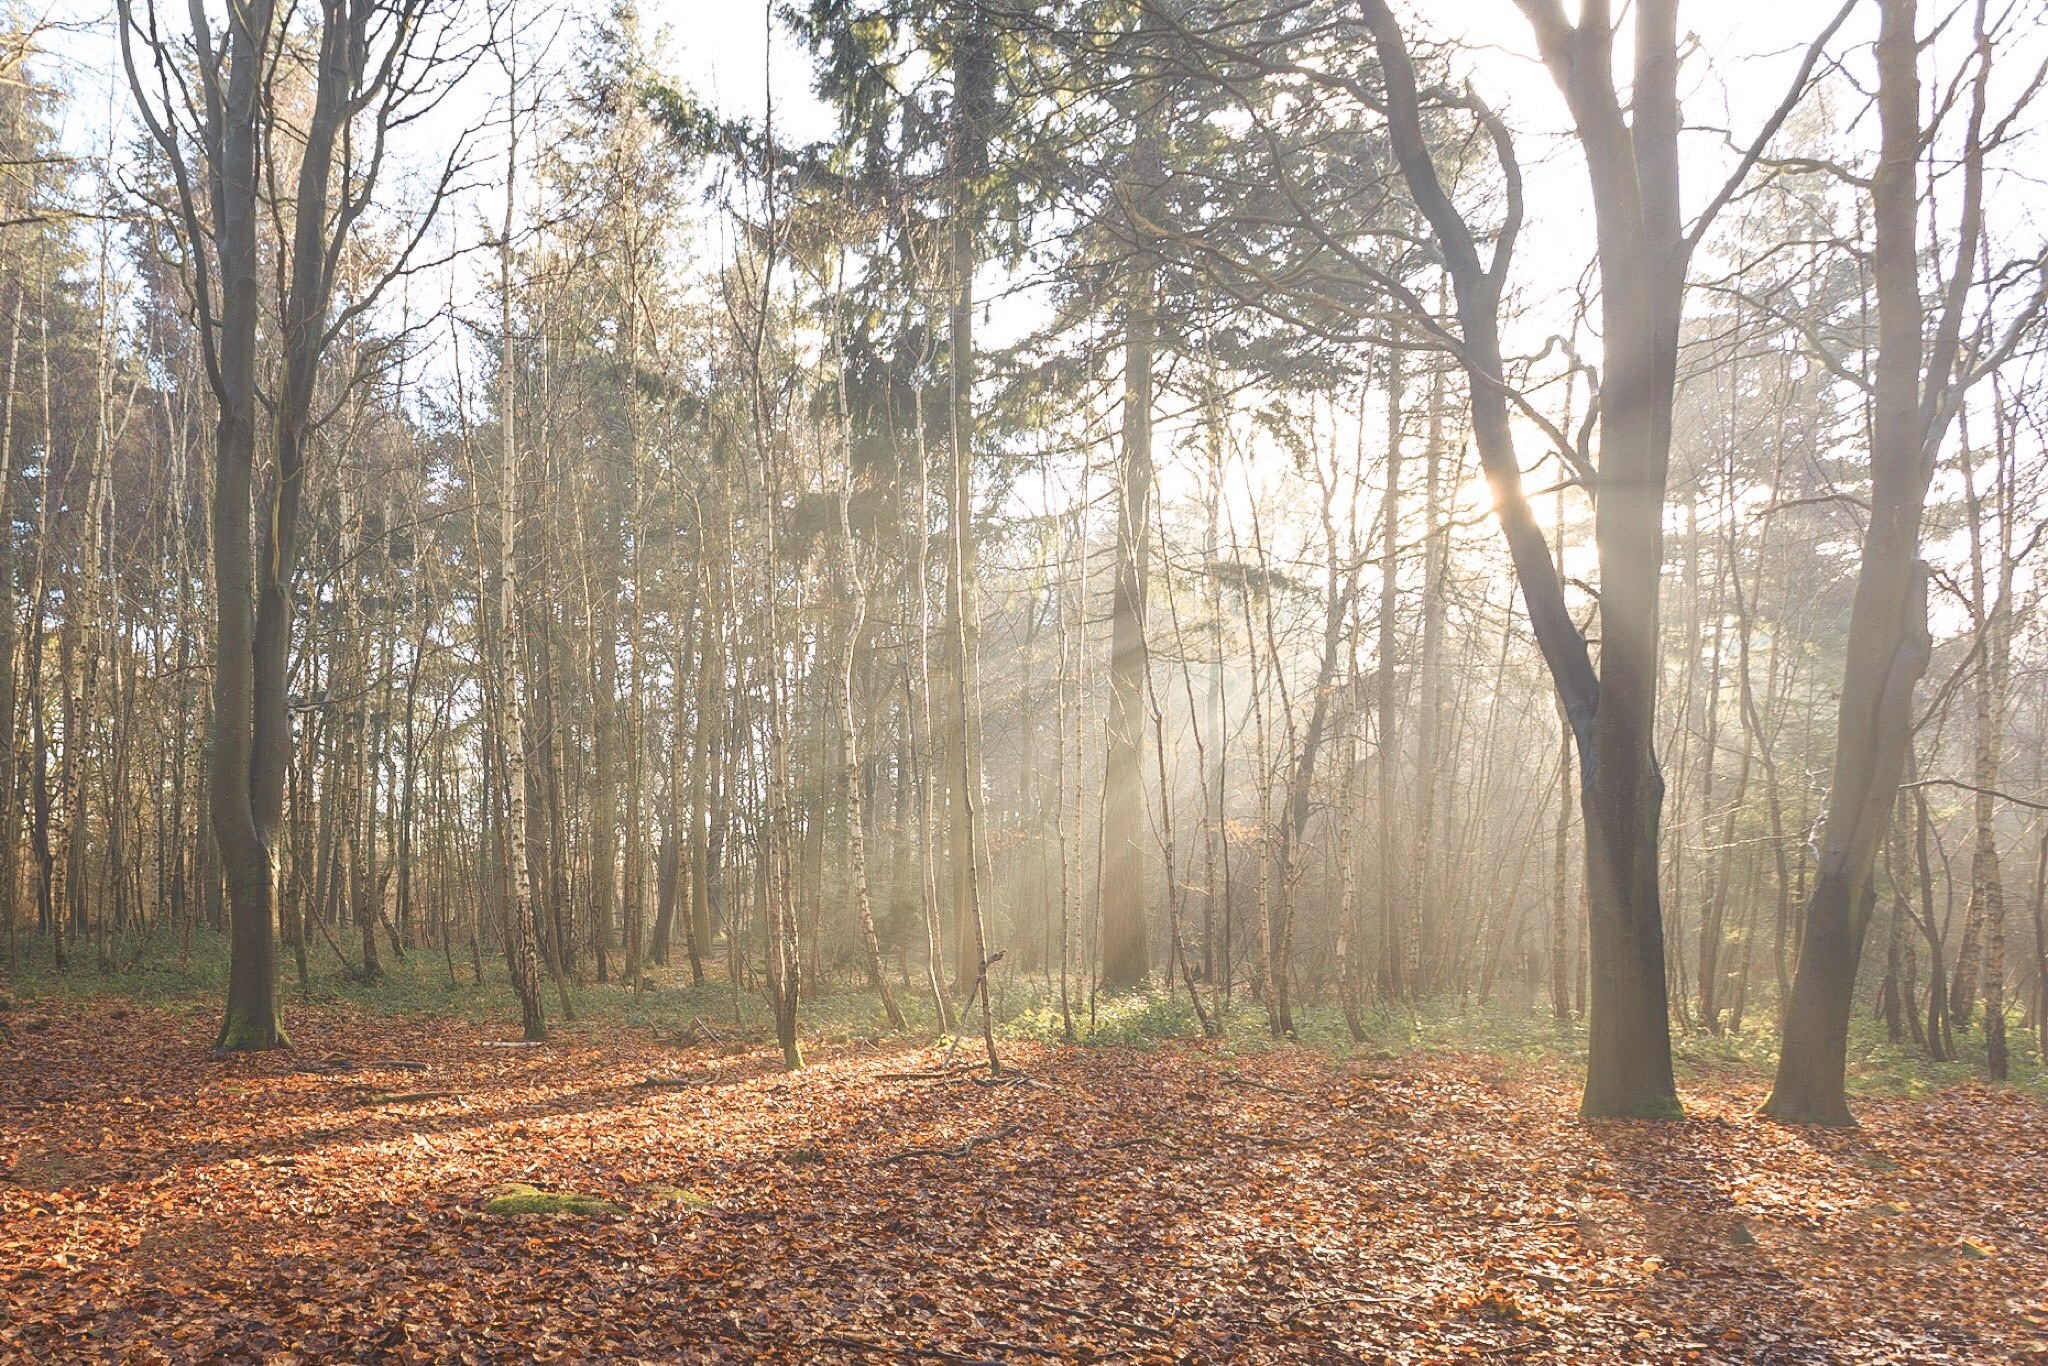 The woods at The Vyne, the wonderful National Trust site in Hampshire